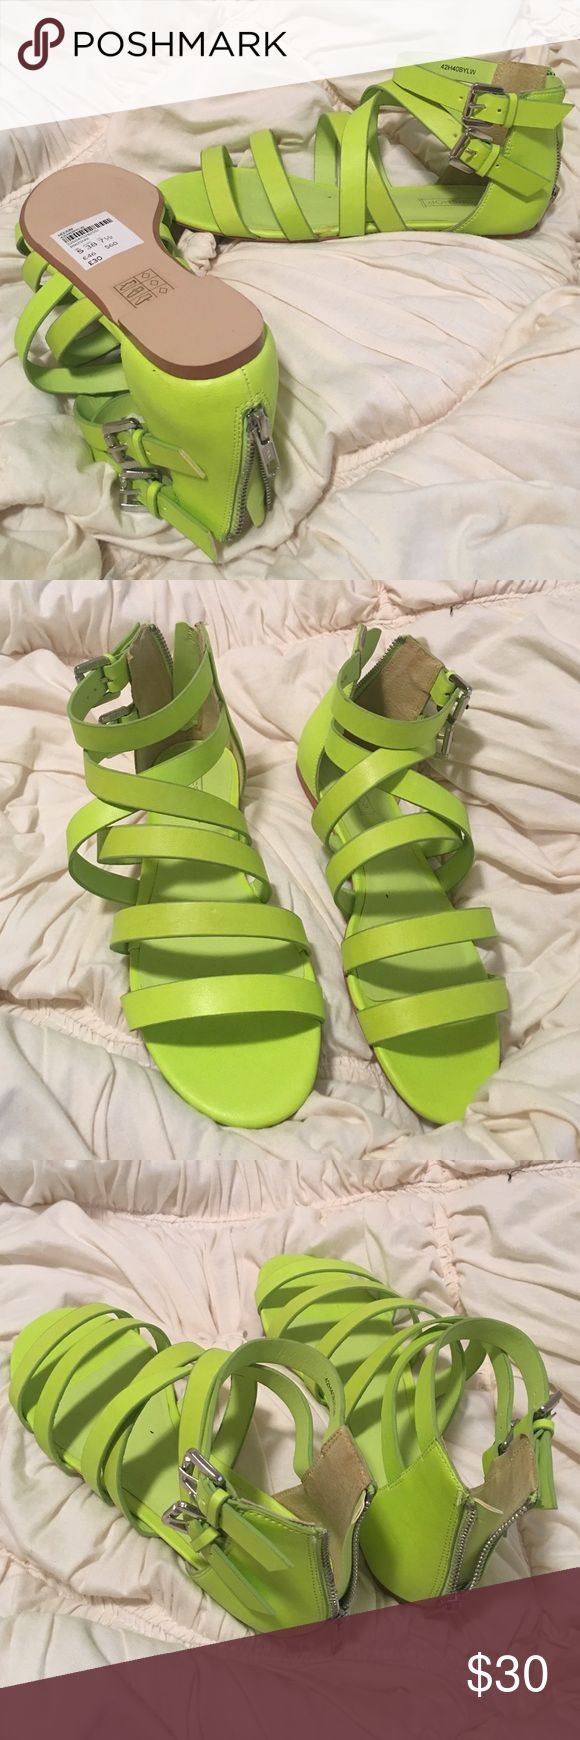 Topshop brand new w tags neon leather sandals Brand new topshop neon sandals with silver hardware. New with tags. Topshop Shoes Sandals